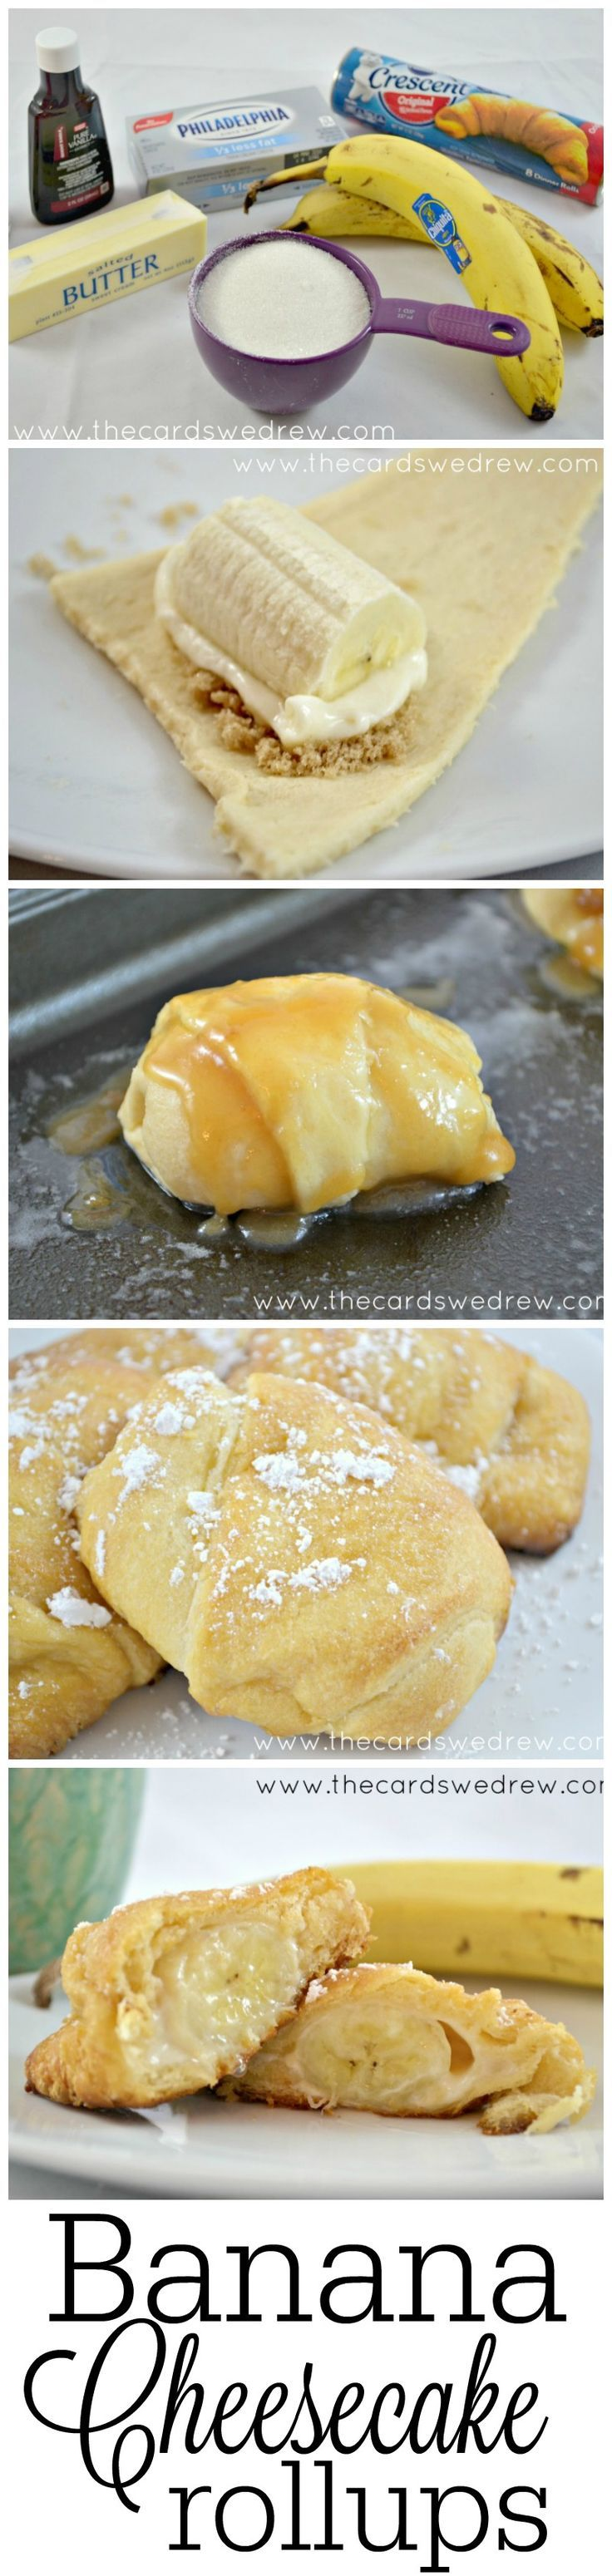 Banana Cheesecake Rollups from @thecardswedrew